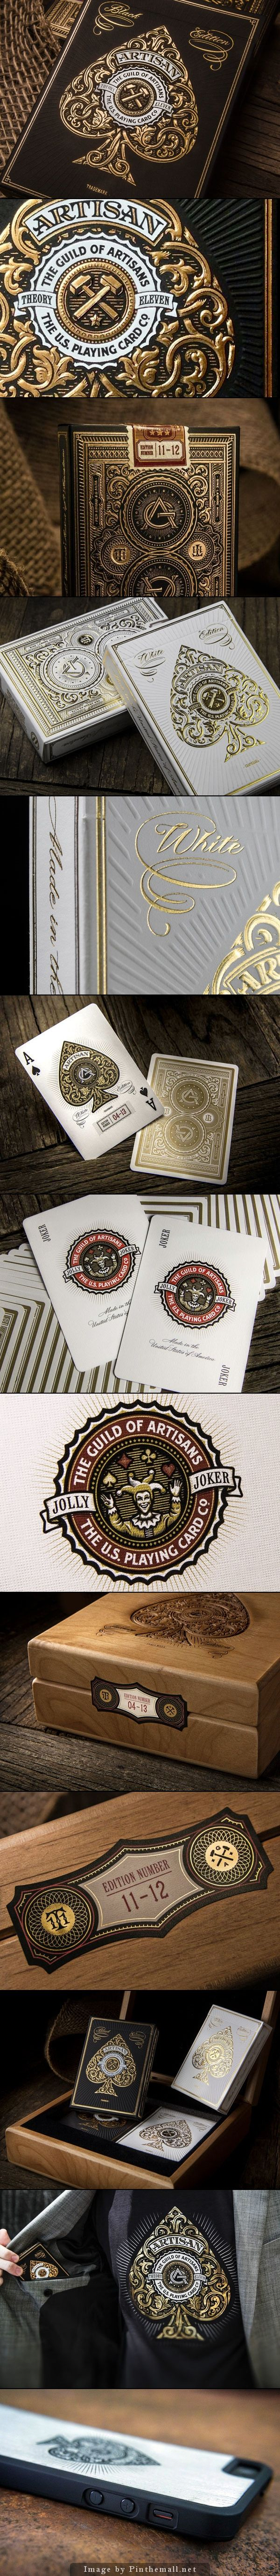 Artisan Playing Cards. Made by artisans, for artisans. #packaging #design (View more at www.aldenchong.com)